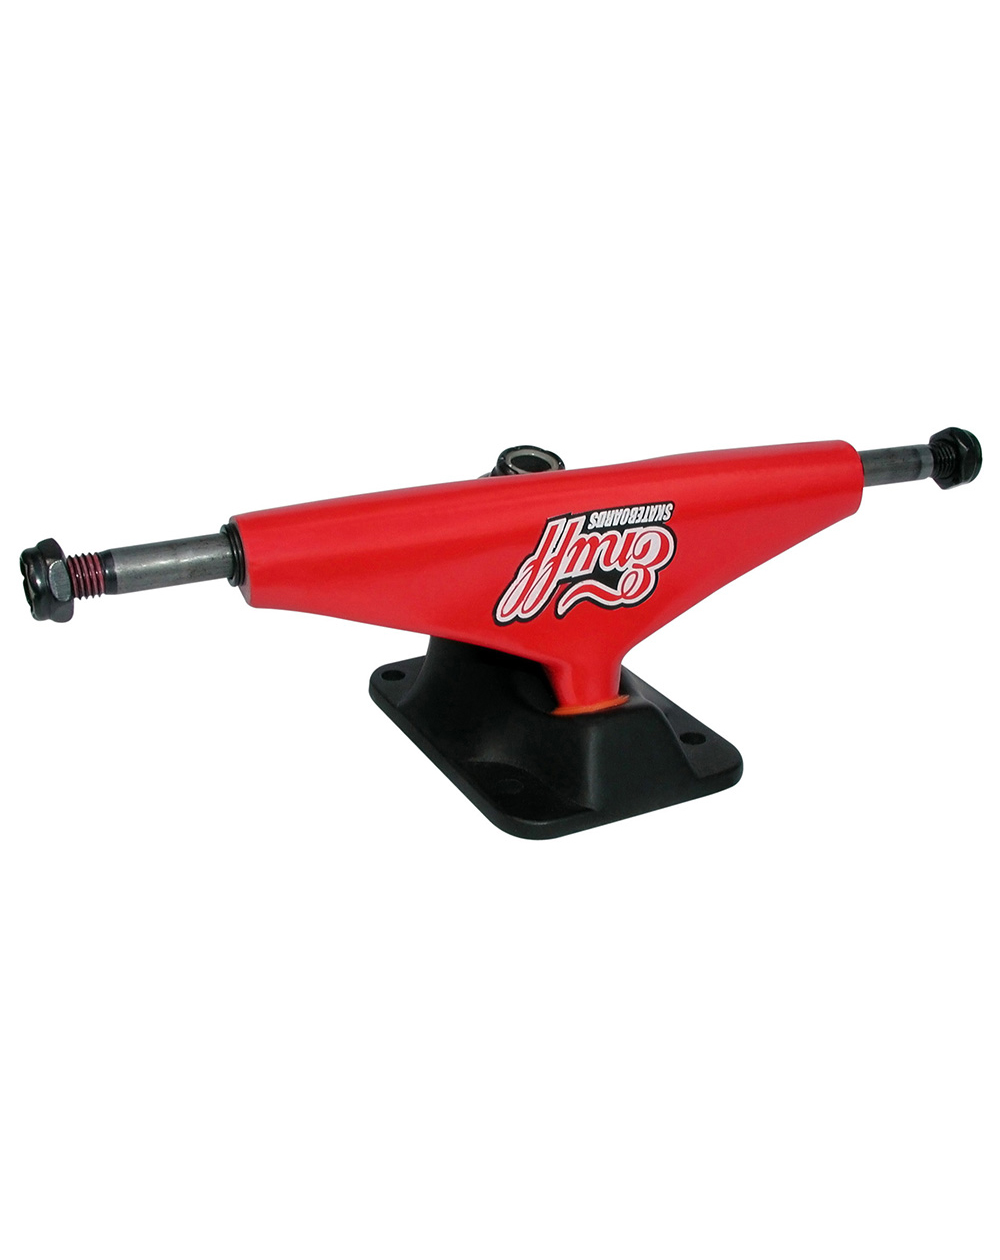 Enuff Truck Skateboard Pro 306Low 5.00-inch Demon 2 pz